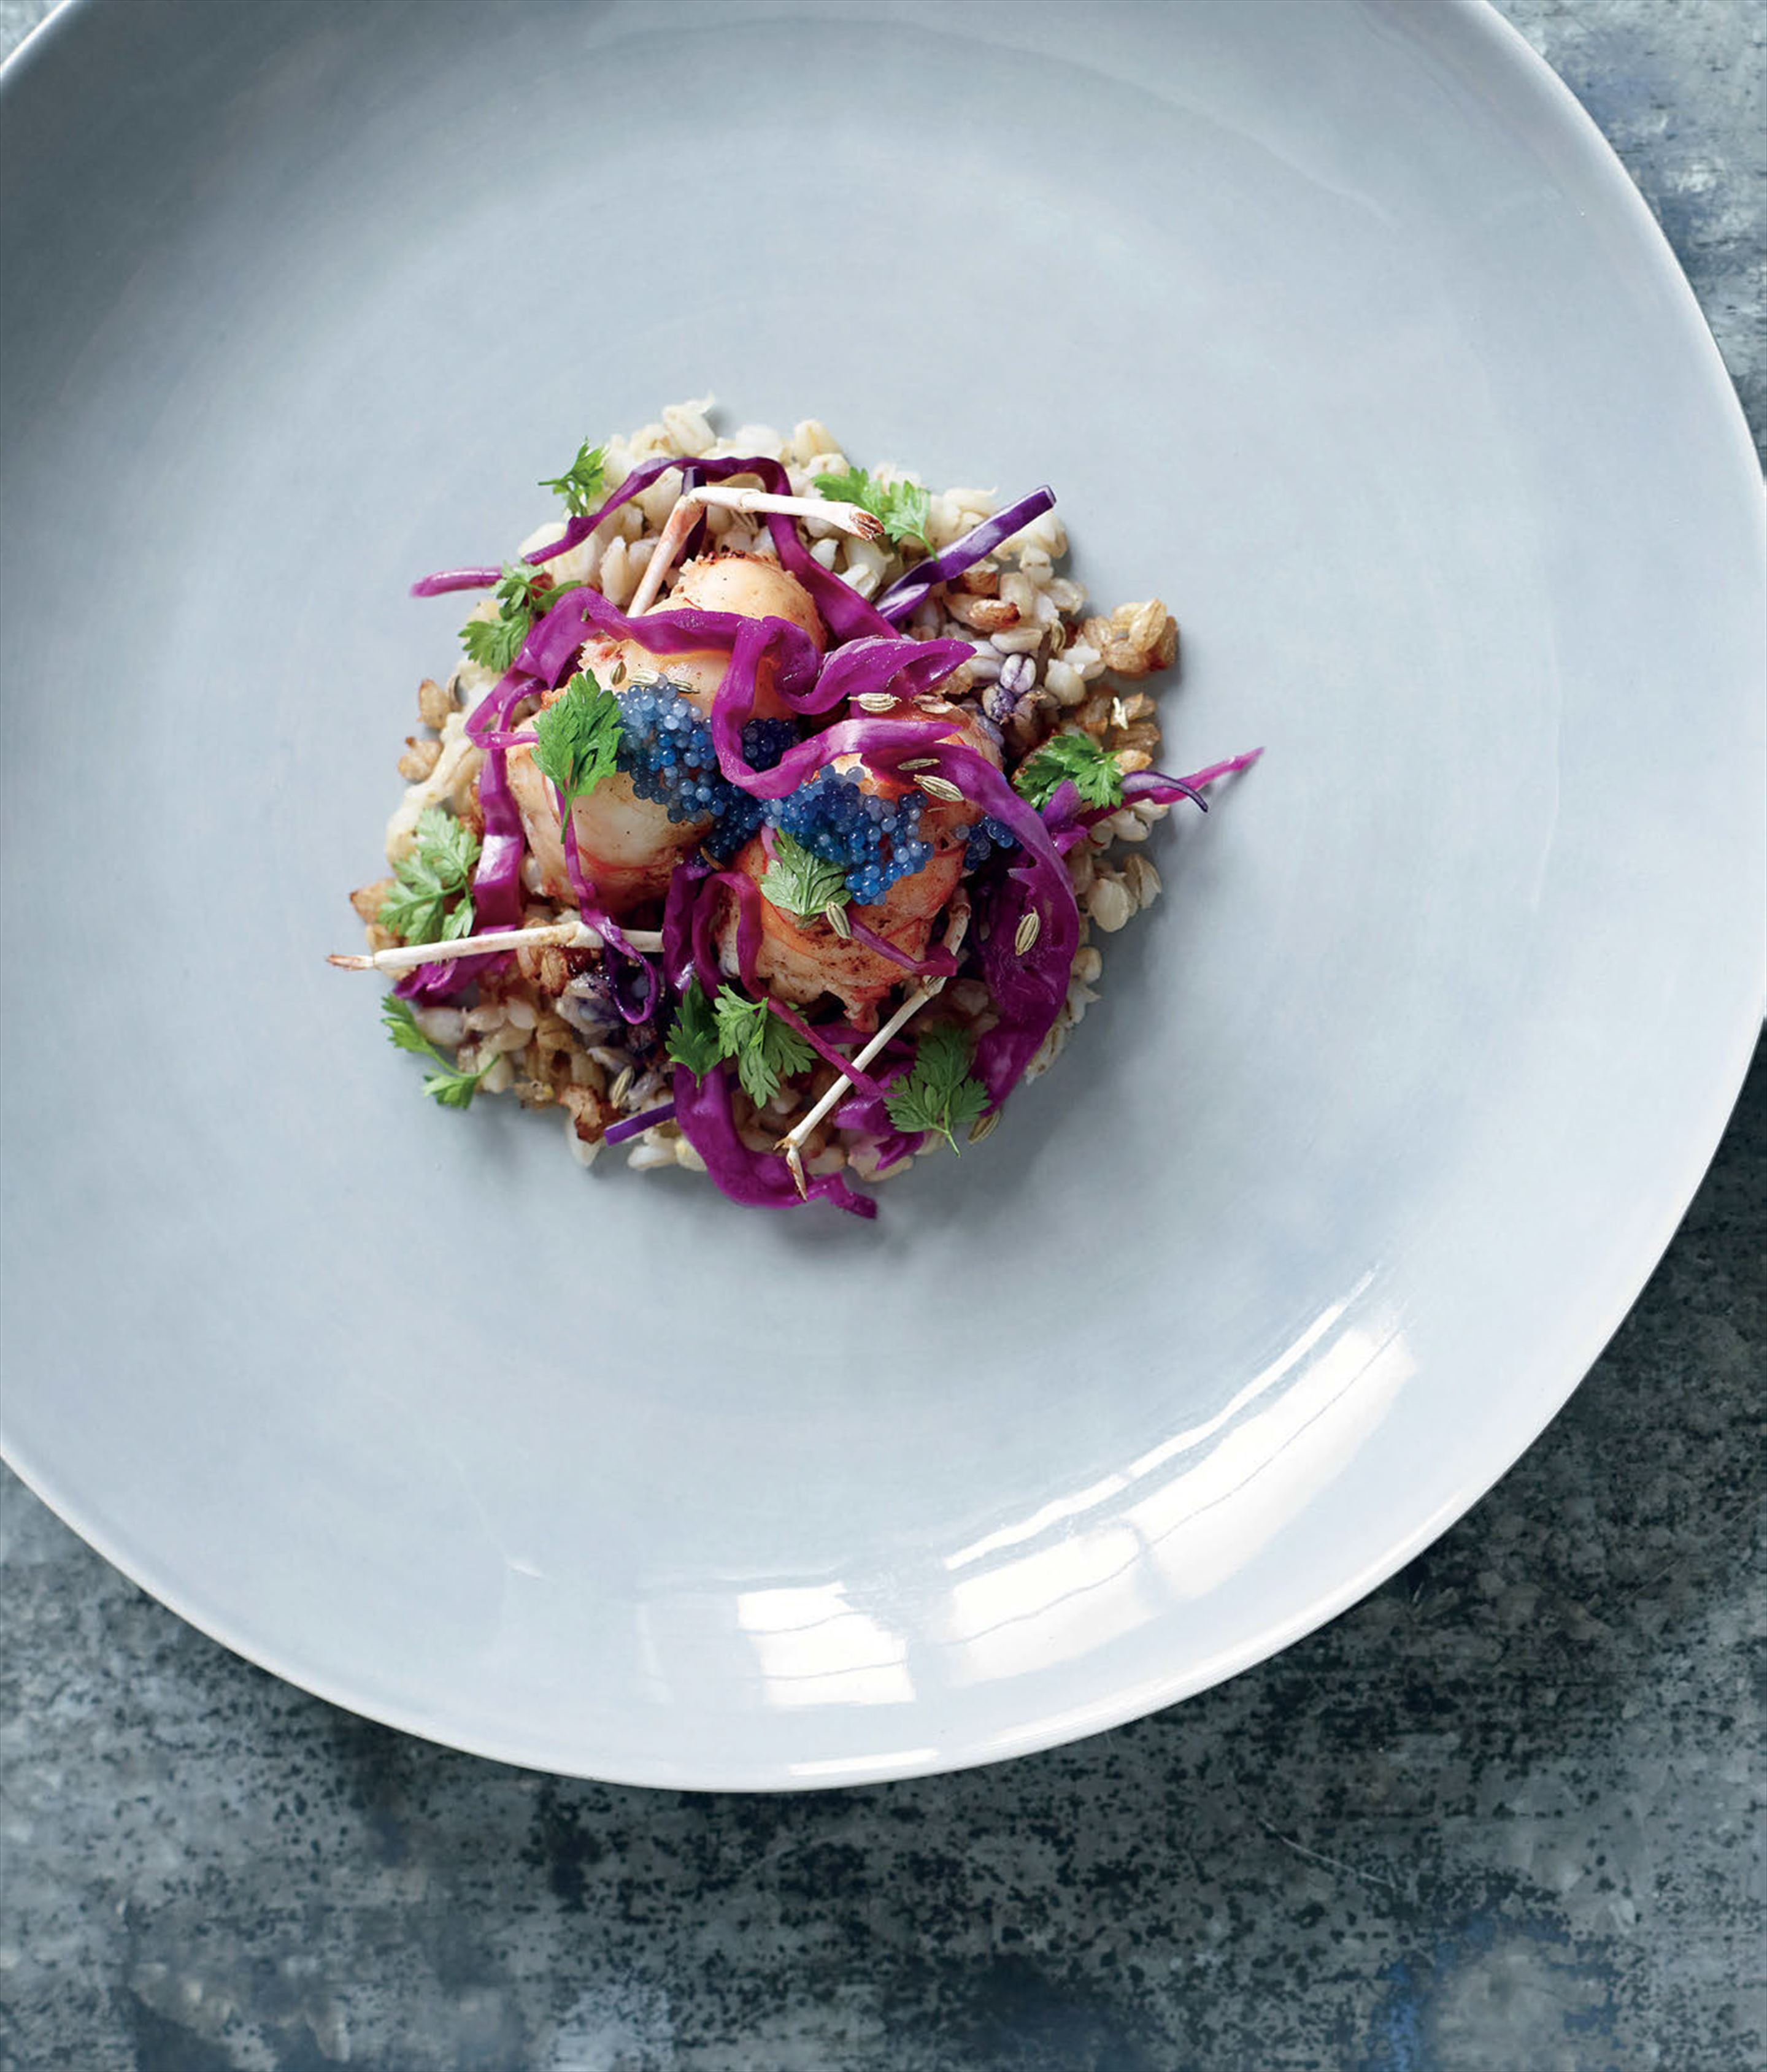 Scampi with pickled cabbage and textures of barley